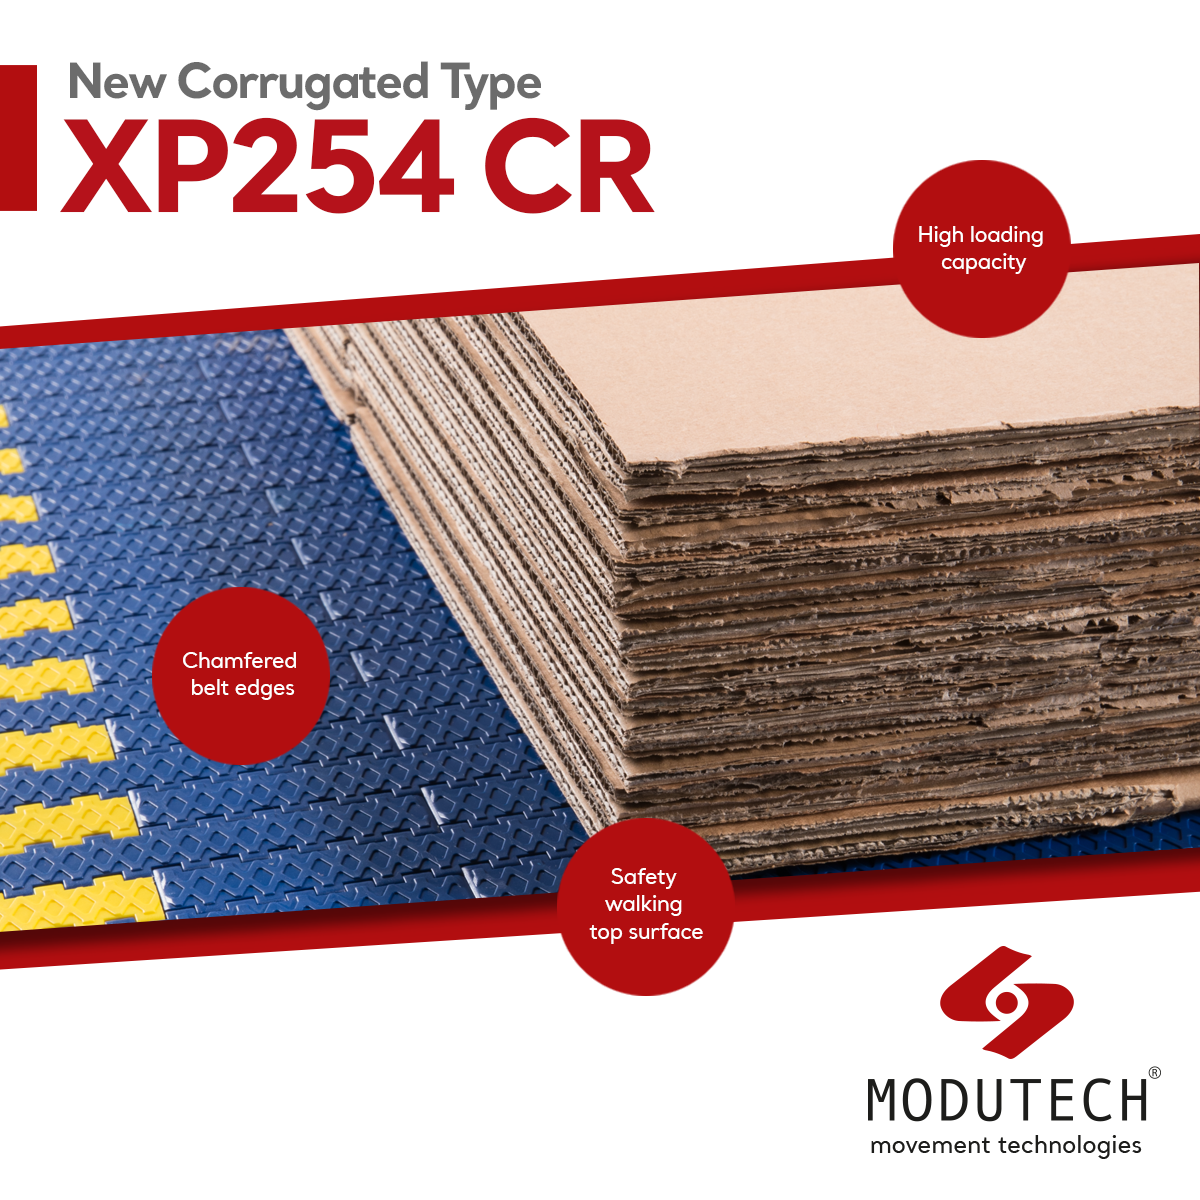 Features of Modutech Corrugated New Type